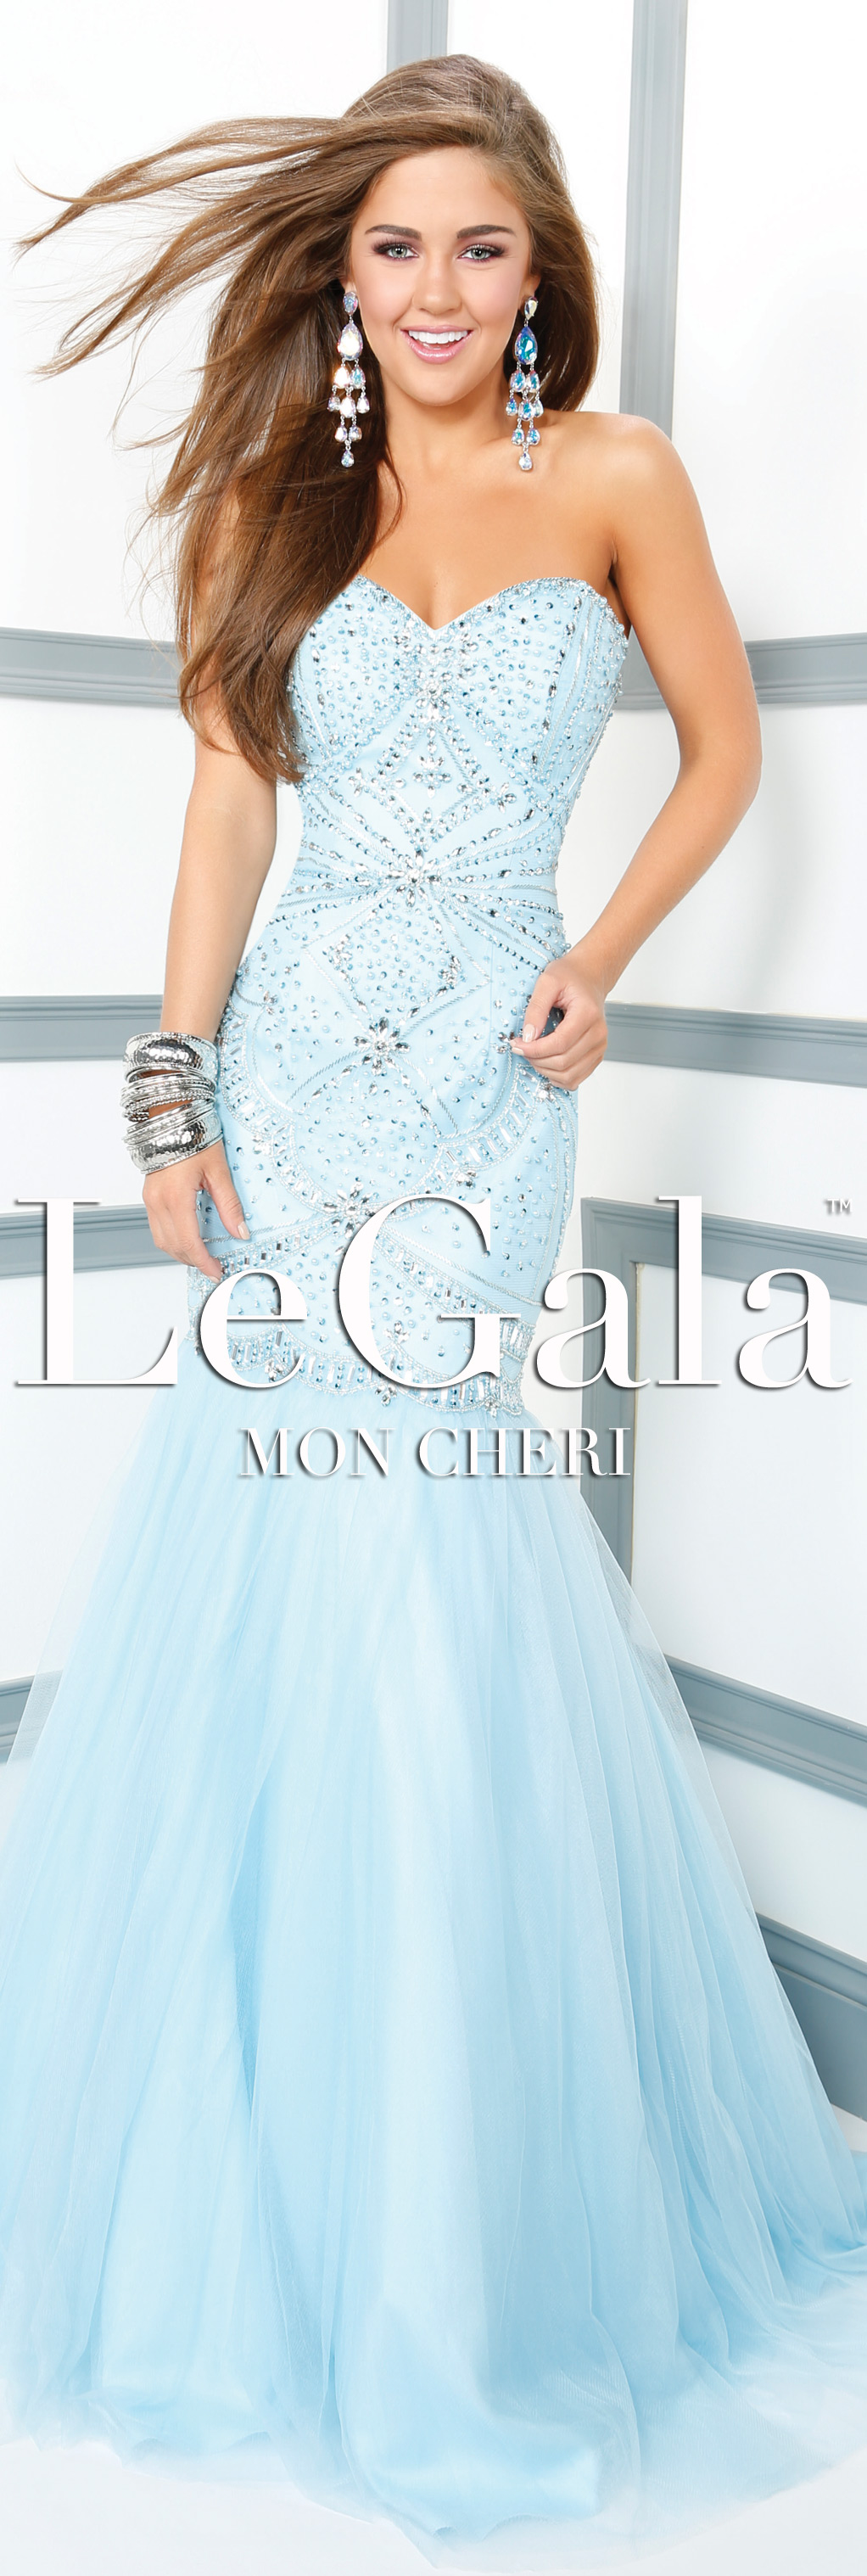 Spring prom dress by le gala by mon cheri style